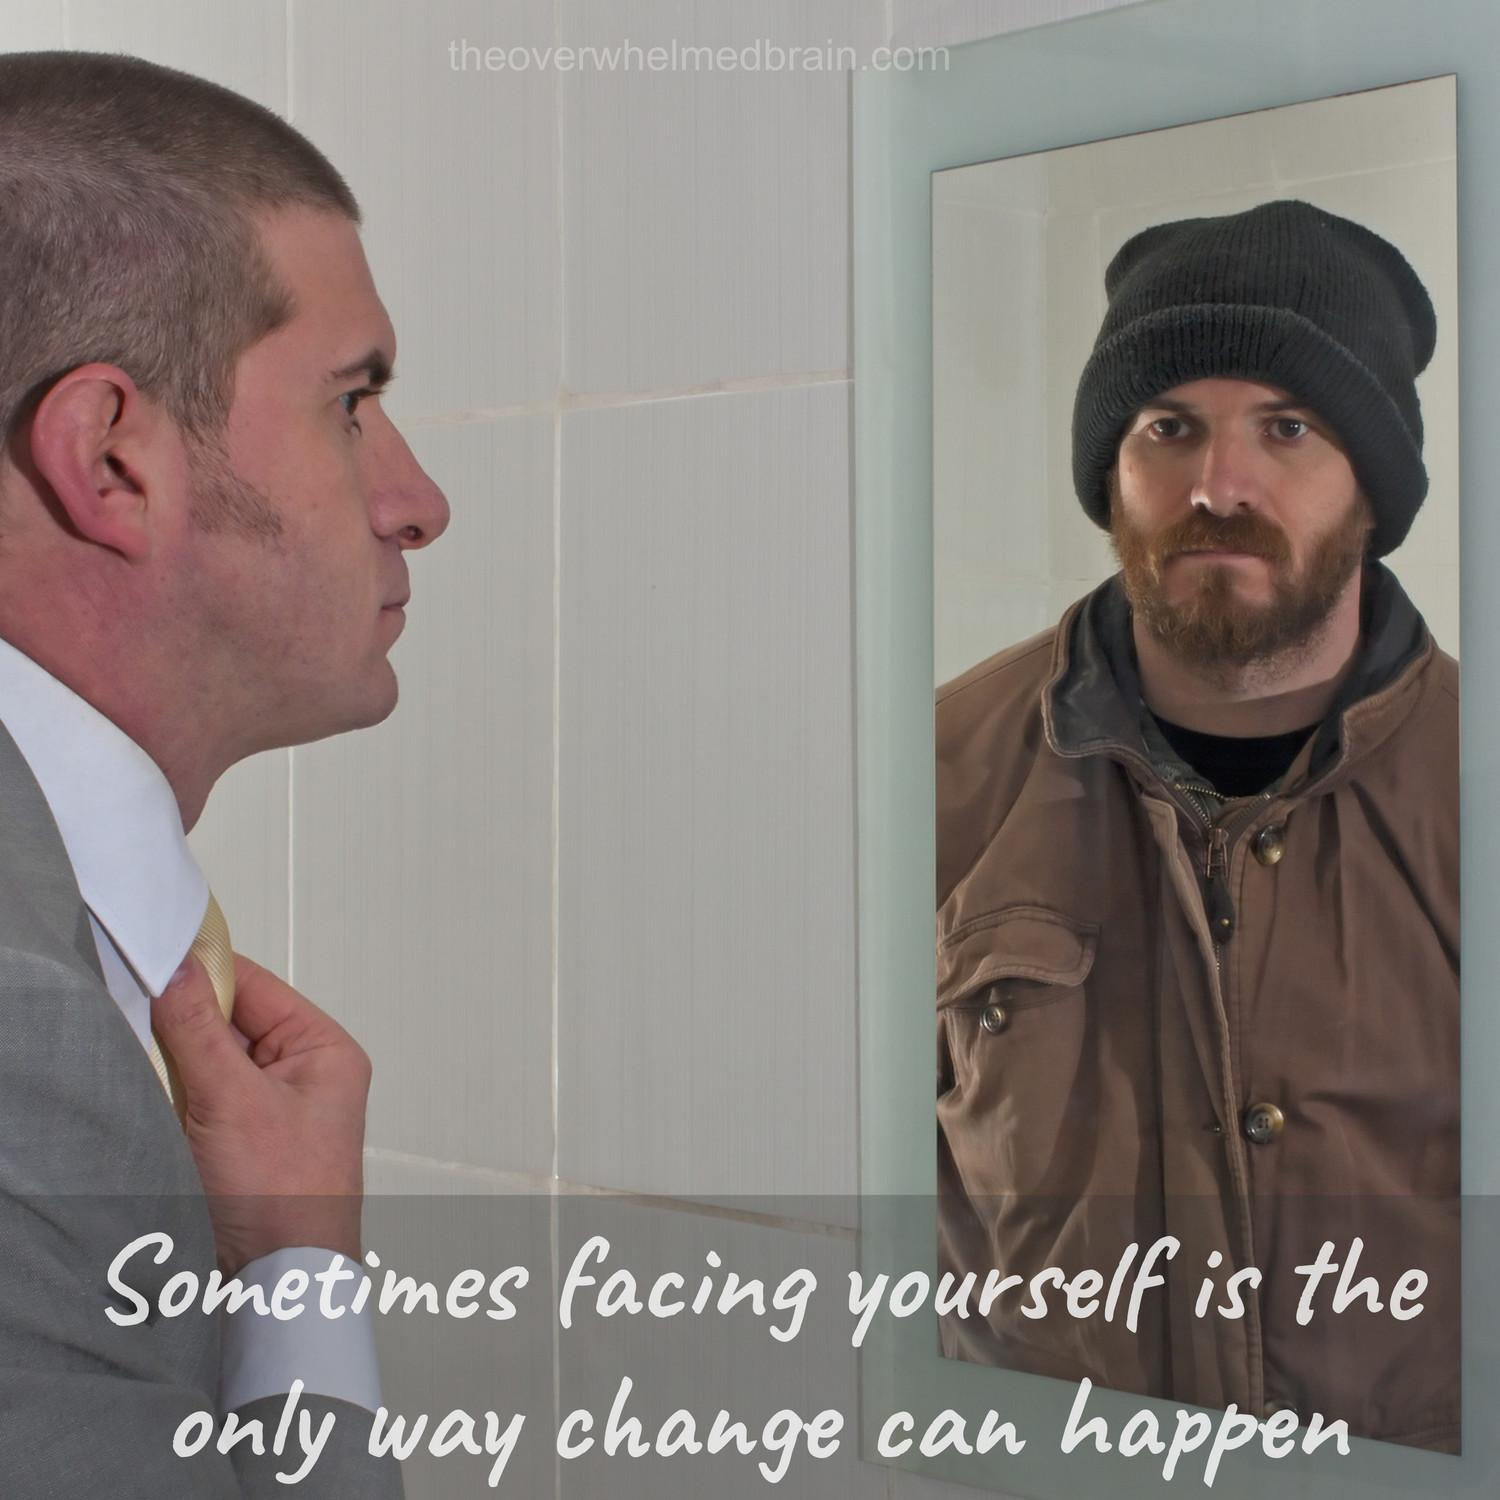 Sometimes facing yourself is the only way change can happen